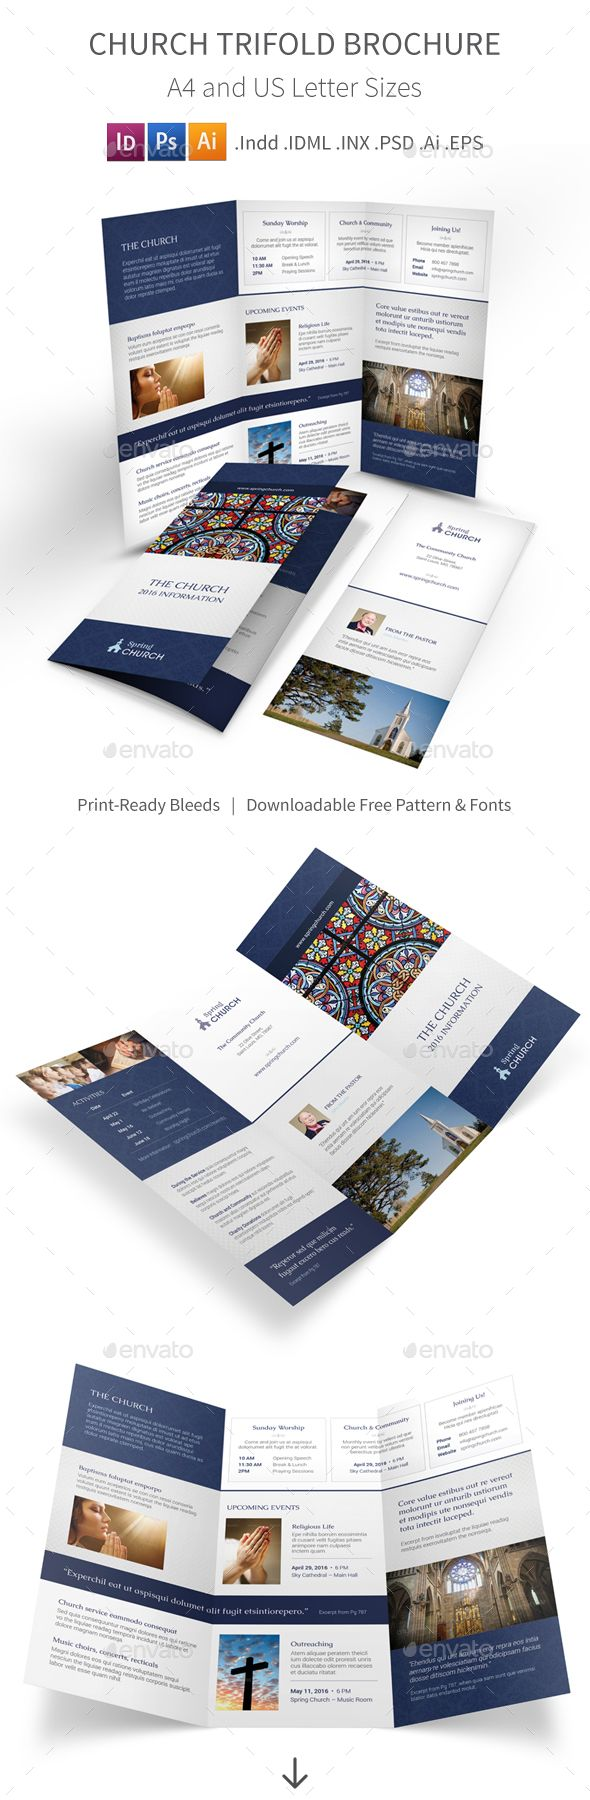 Church Trifold Brochure   Brochures Churches And Brochure Template